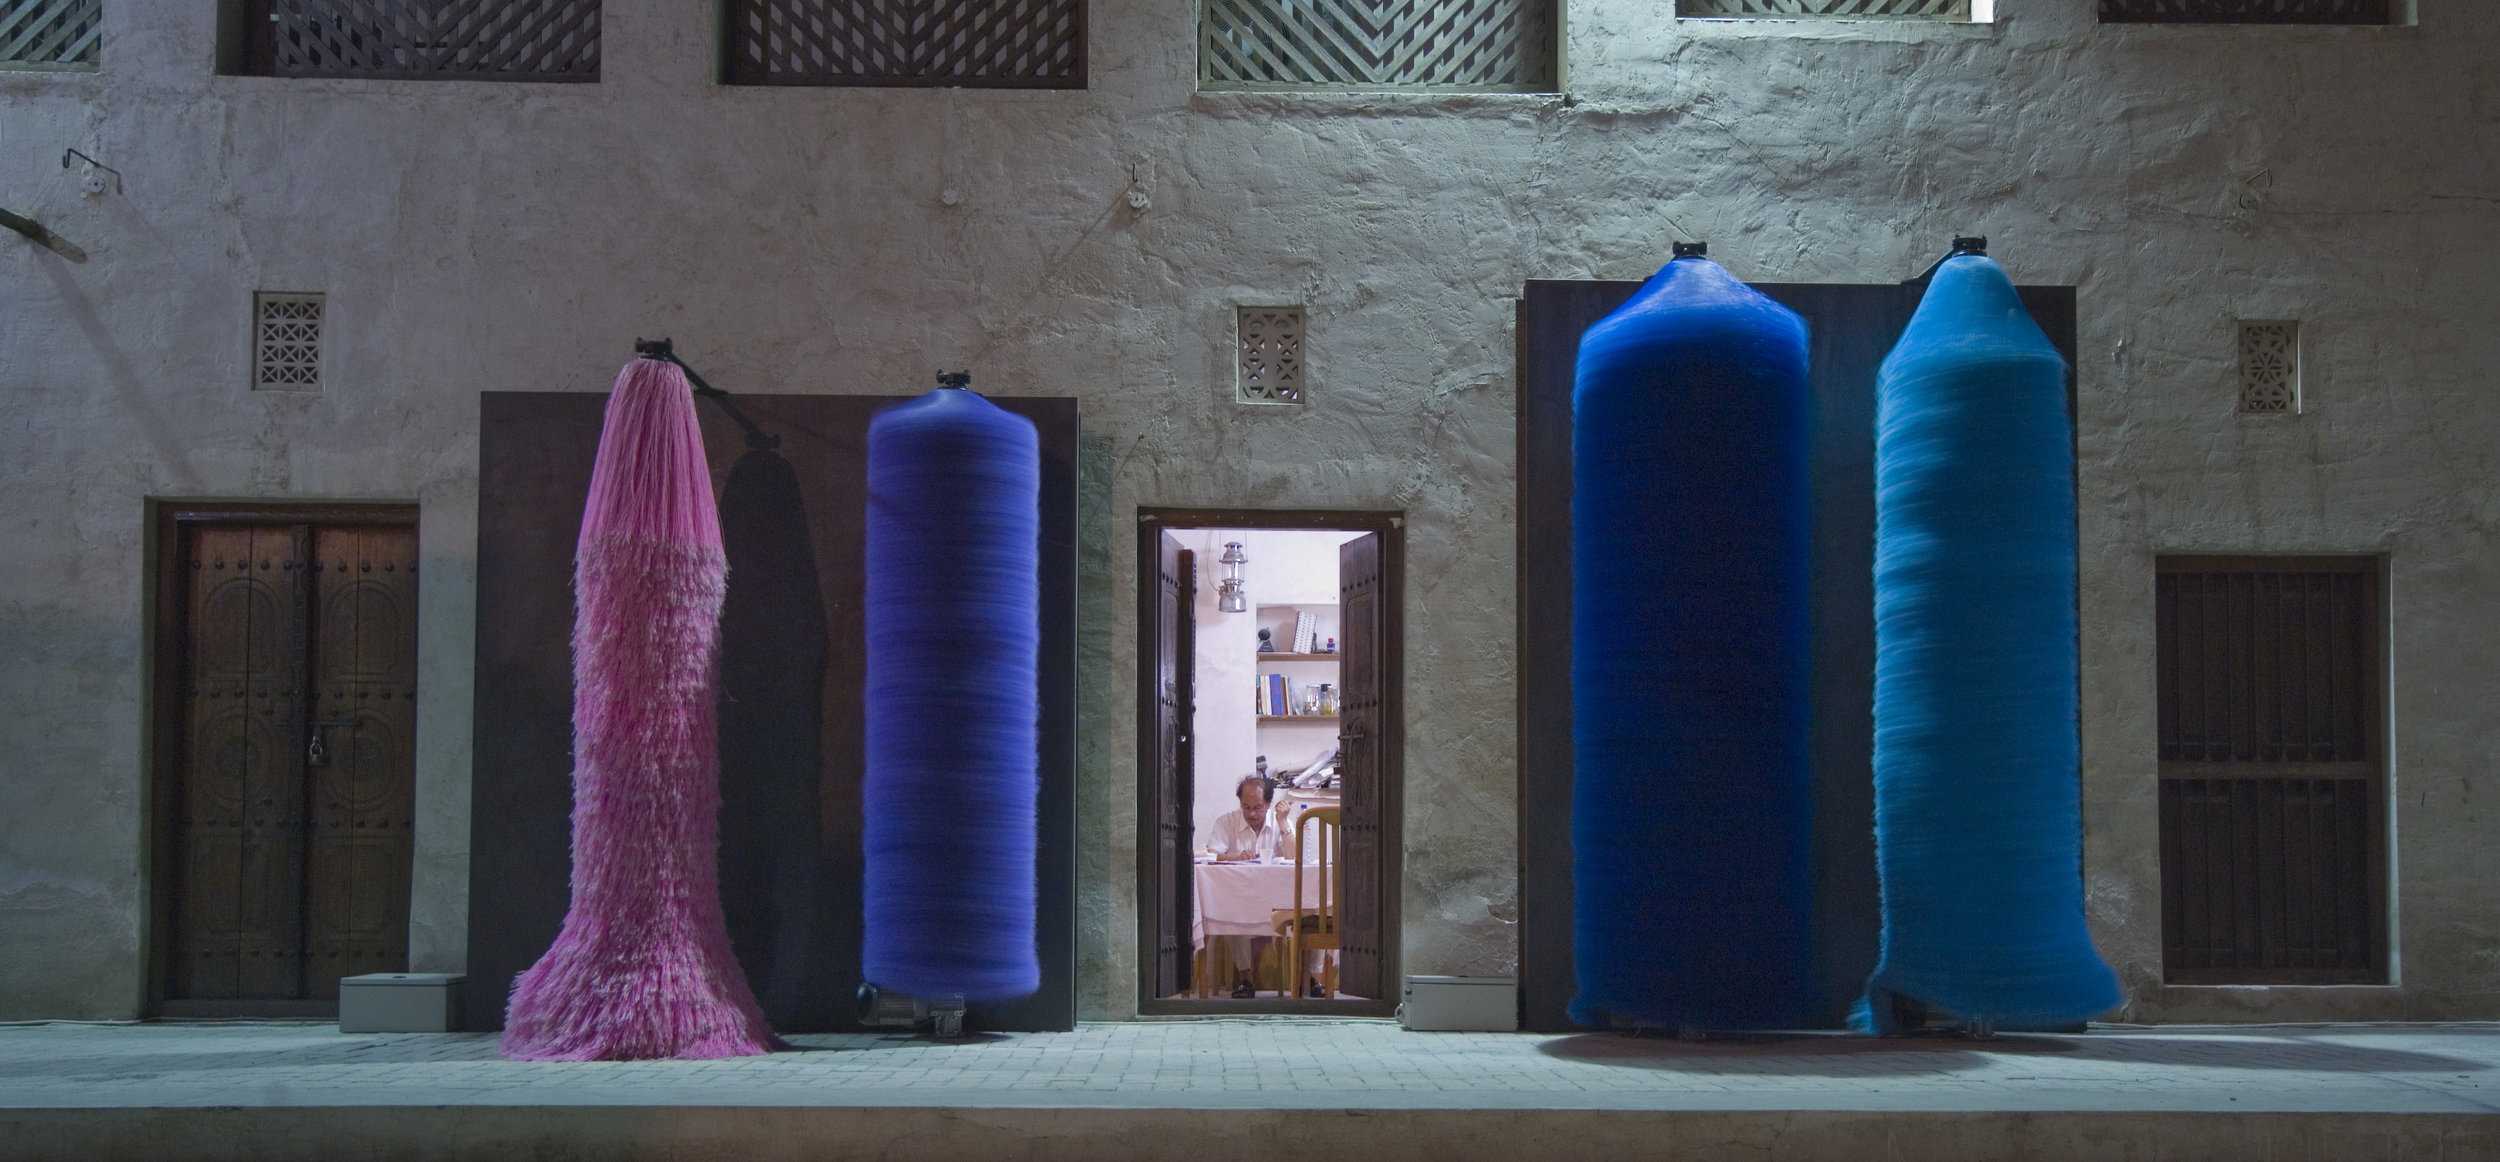 LARA FAVORETTO 'SIMPLE COUPLES' INSTALLED OUTDOORS IN SHARJAH